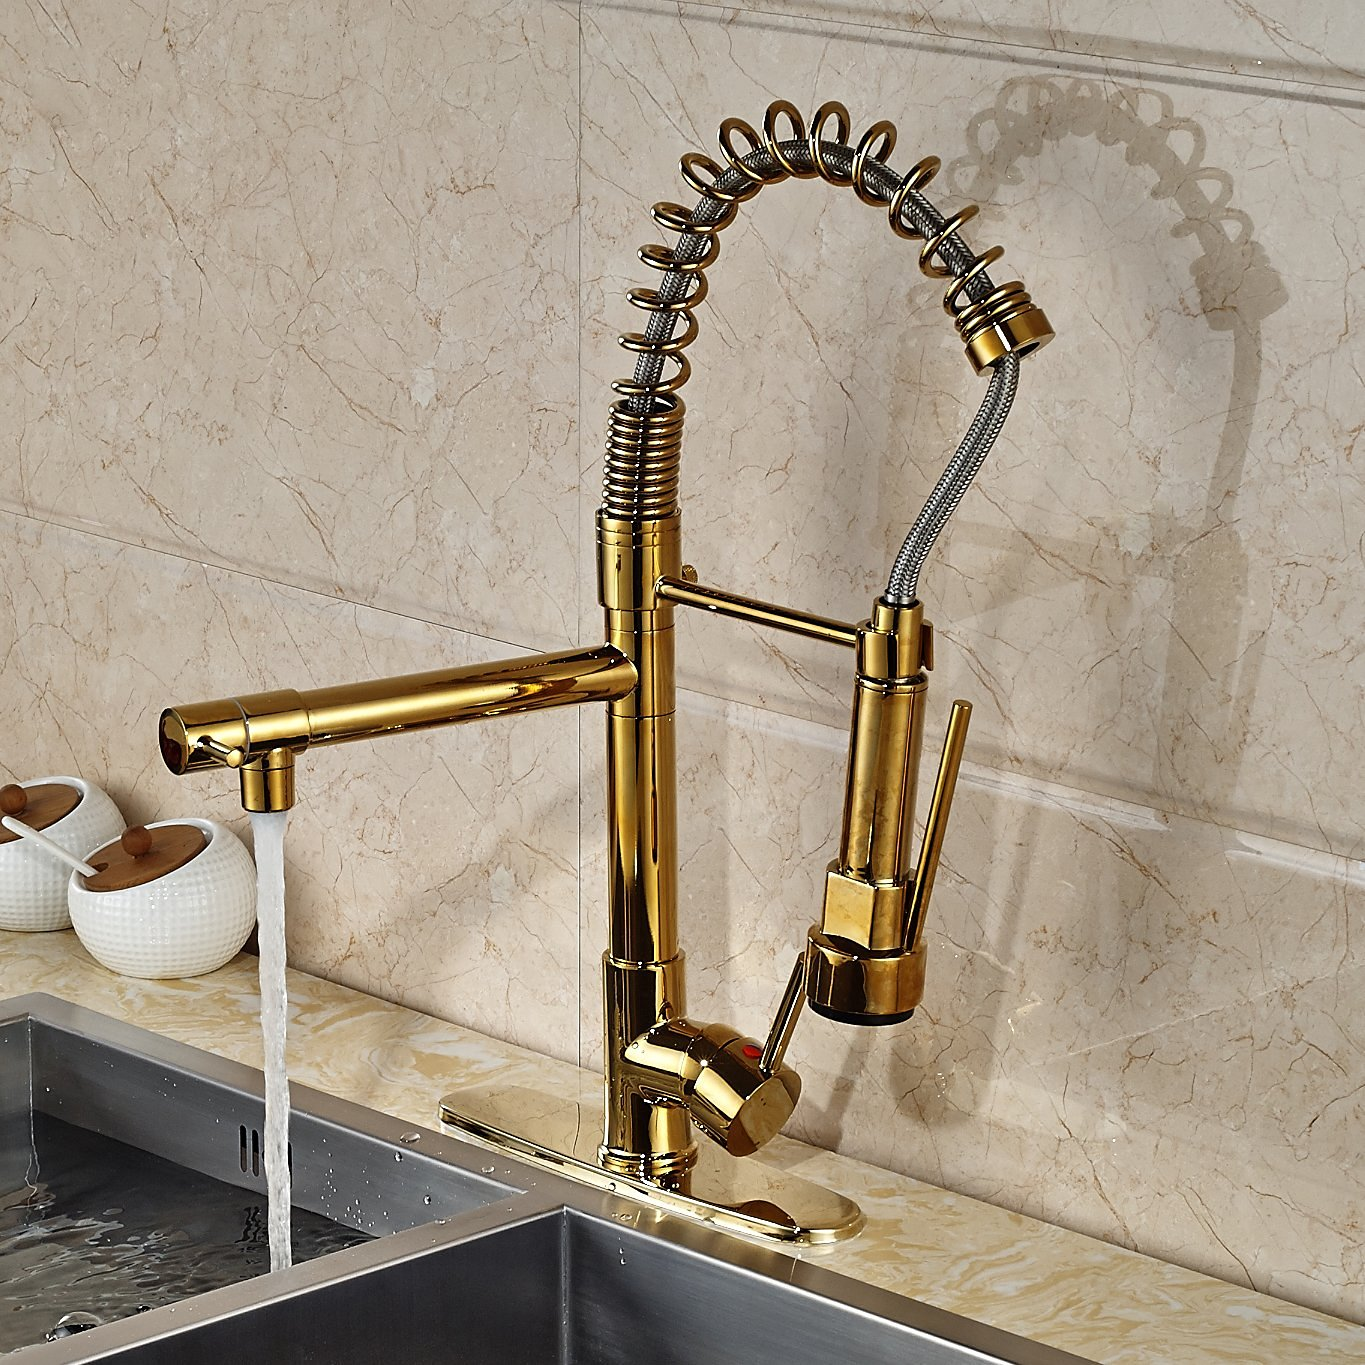 Venezuela Gold Finish Kitchen Sink Faucet with Pull Down Faucet